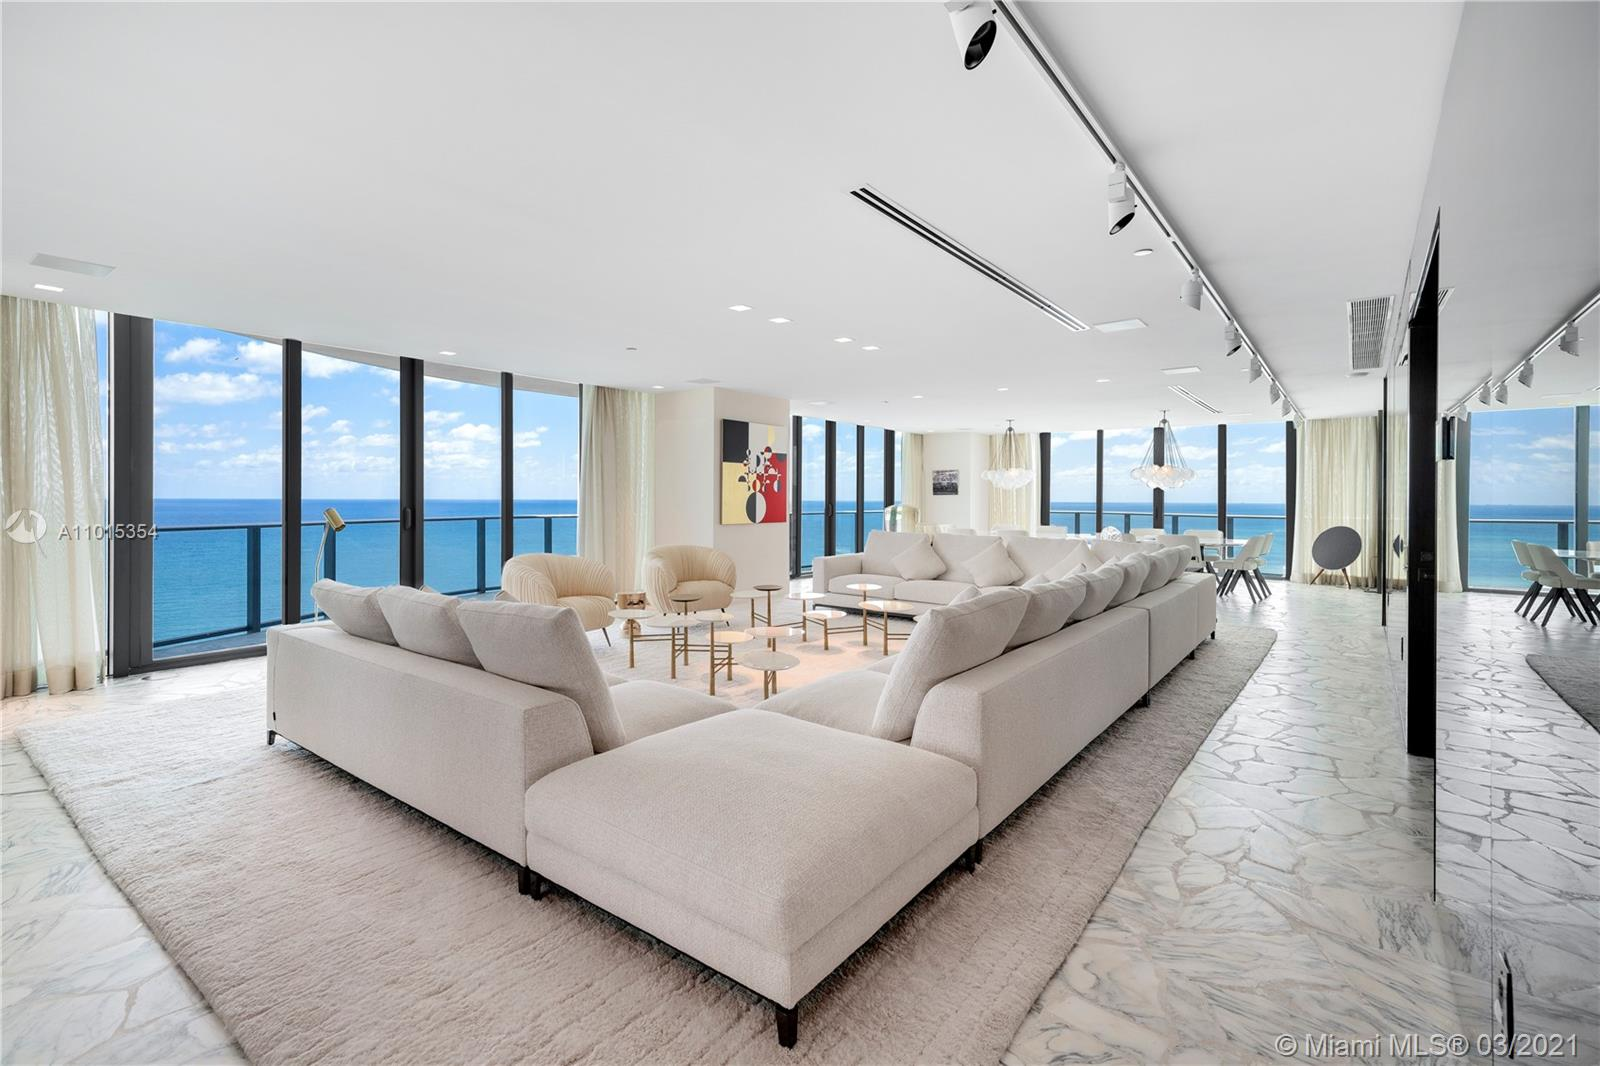 19575 Collins Ave, Unit #17 Luxury Real Estate